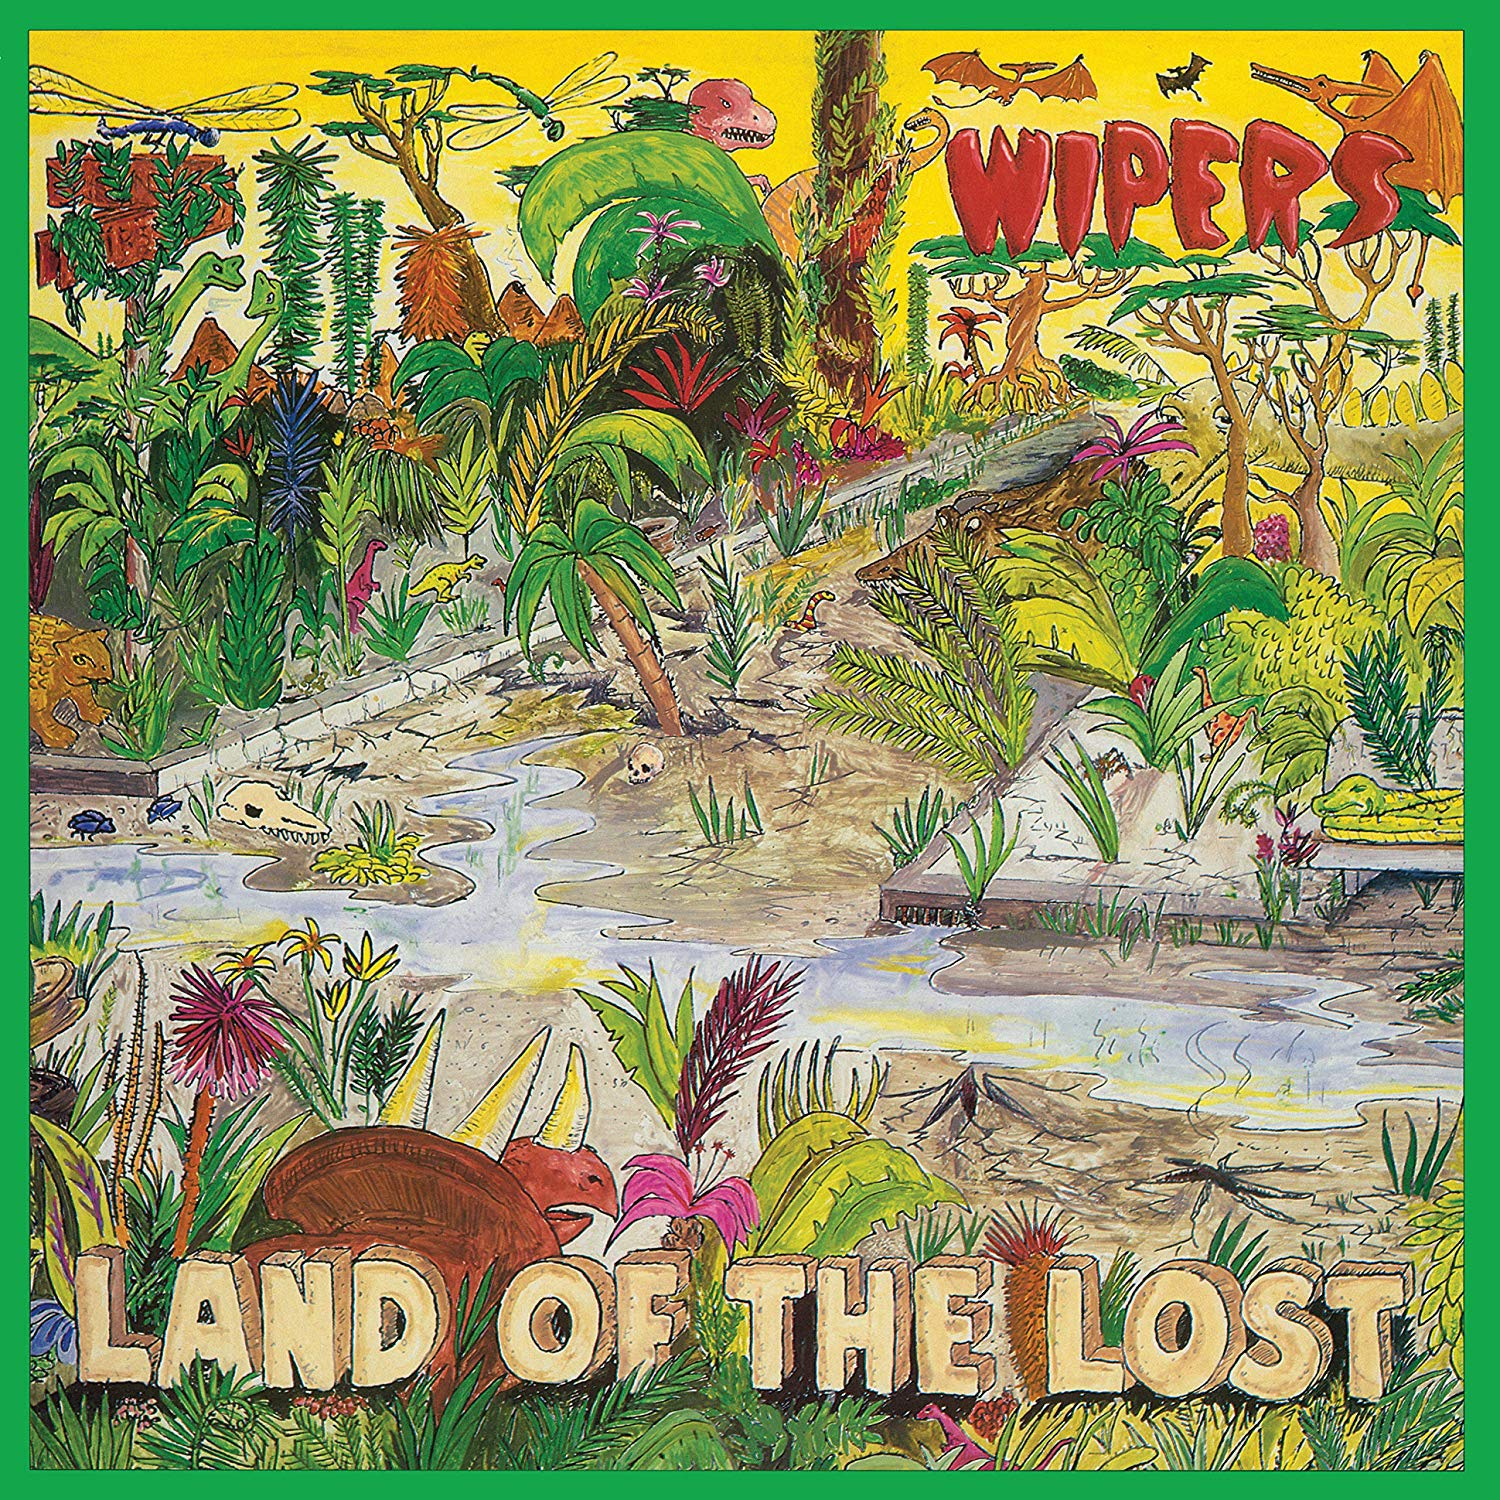 Wipers - Land Of The Lost [LP] (Blue/Gray Colored Vinyl, first-time reissue of 1986 album, limited)